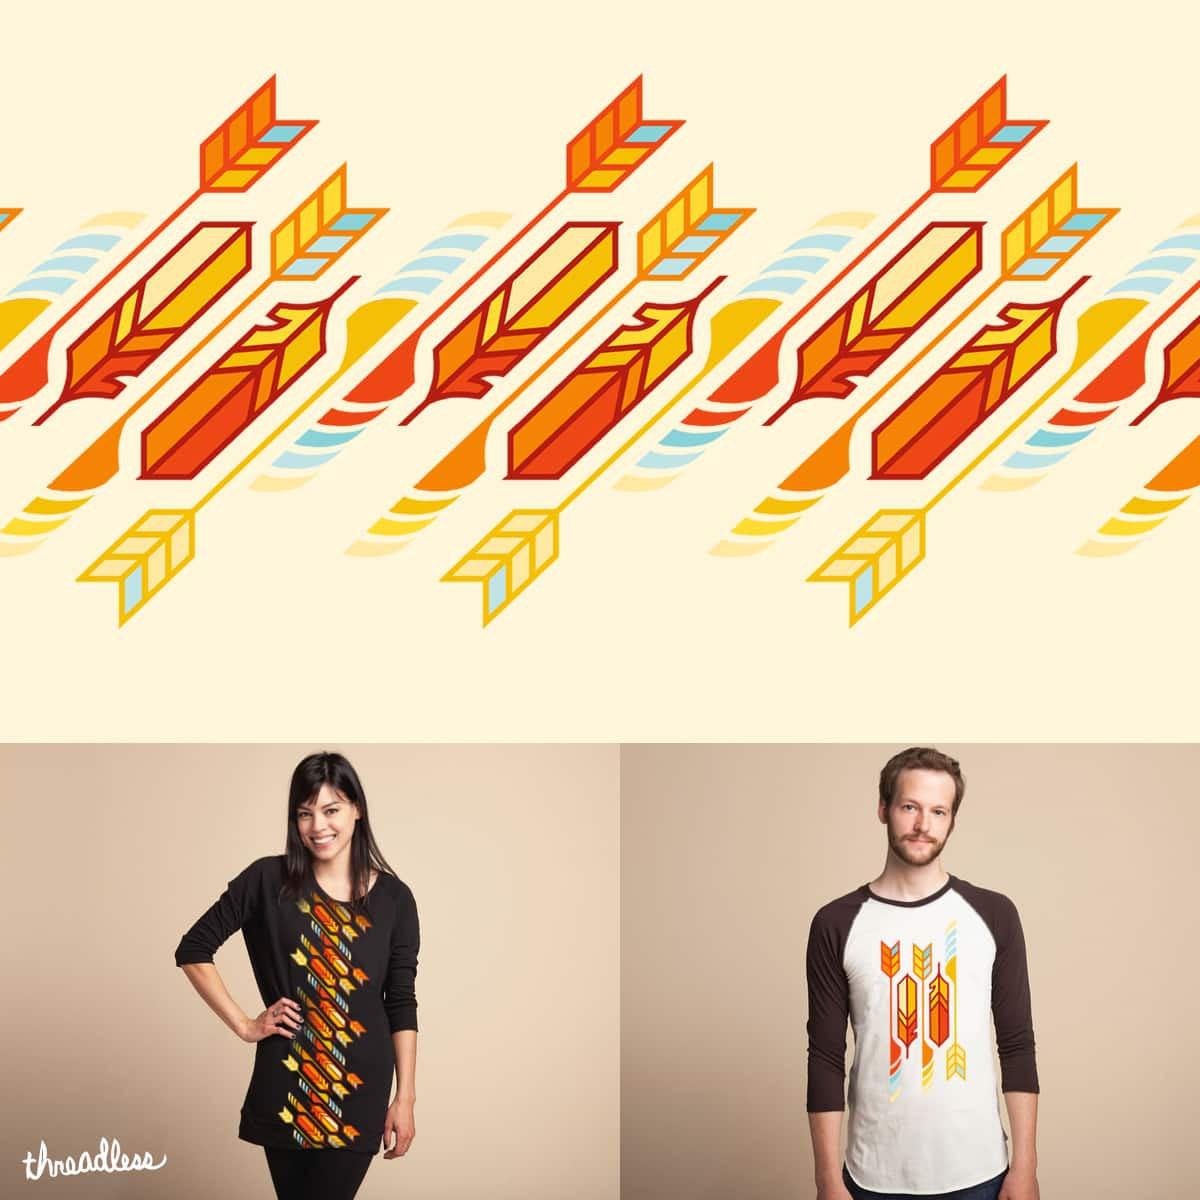 Hunting for turkeys by hellofromthemoon on Threadless